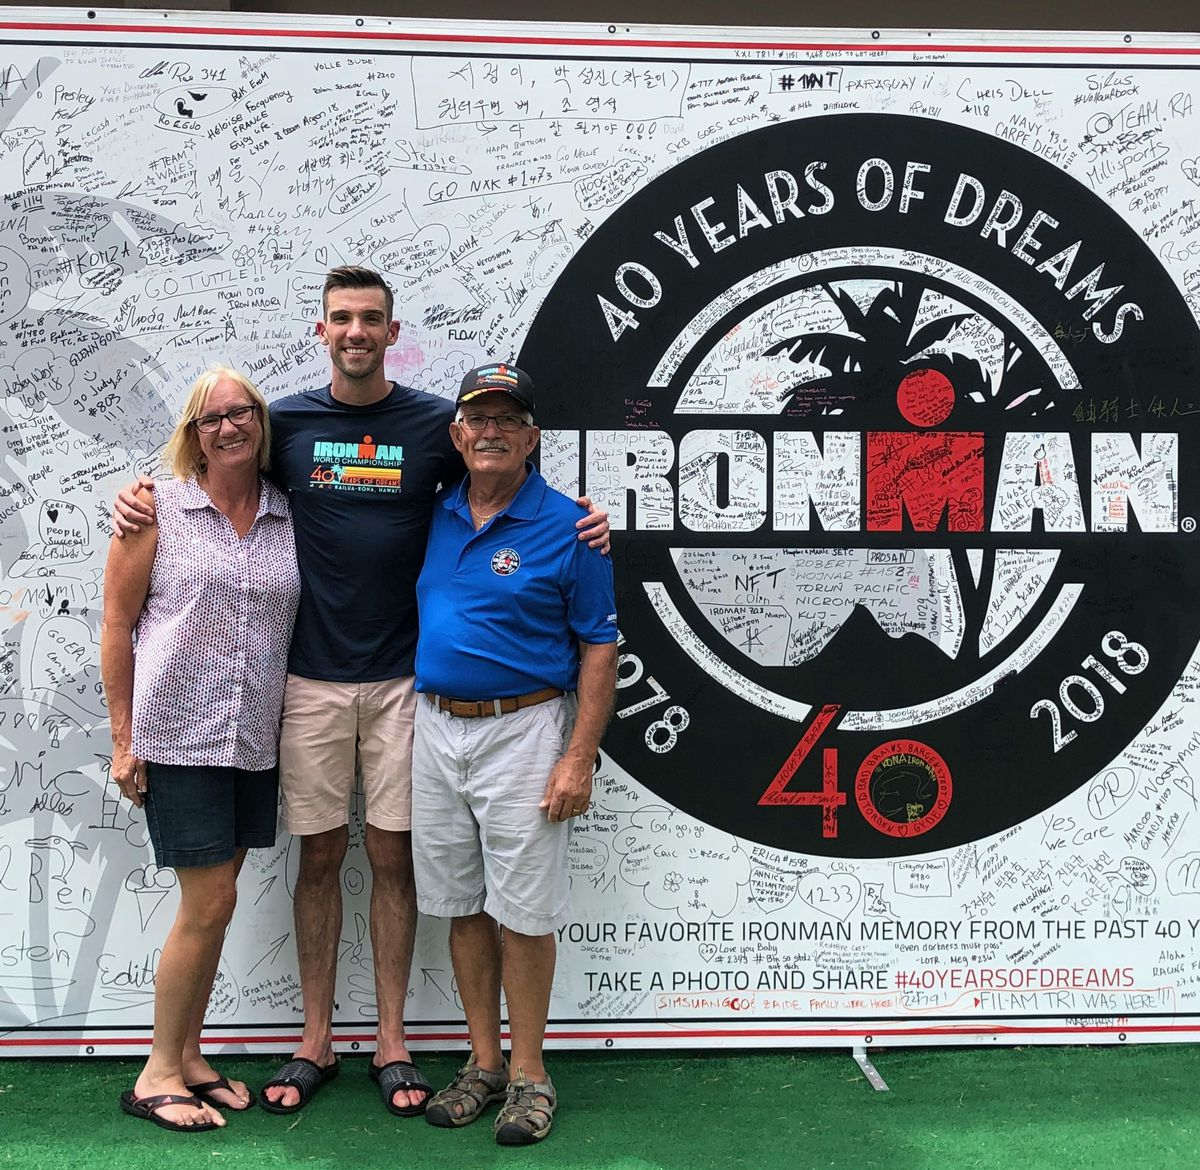 Michael Lalli with his mom and dad the day after racing in the IRONMAN world championship in Kona in 2018.